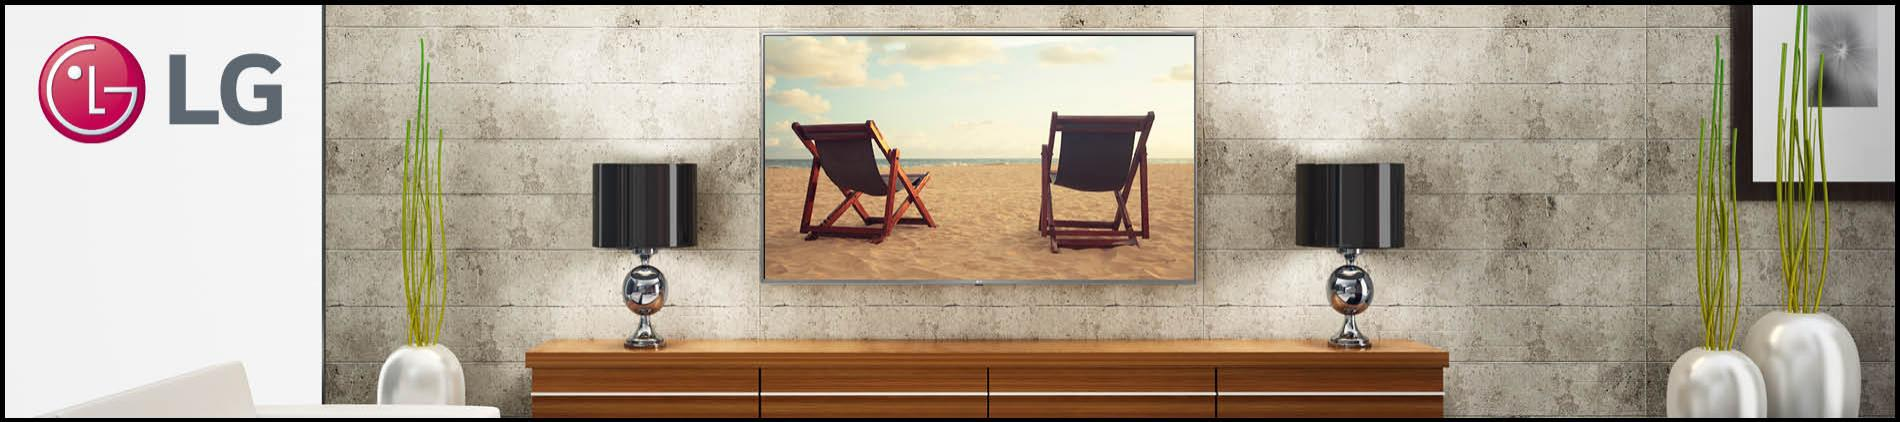 Come In To SEE New LG TV's!